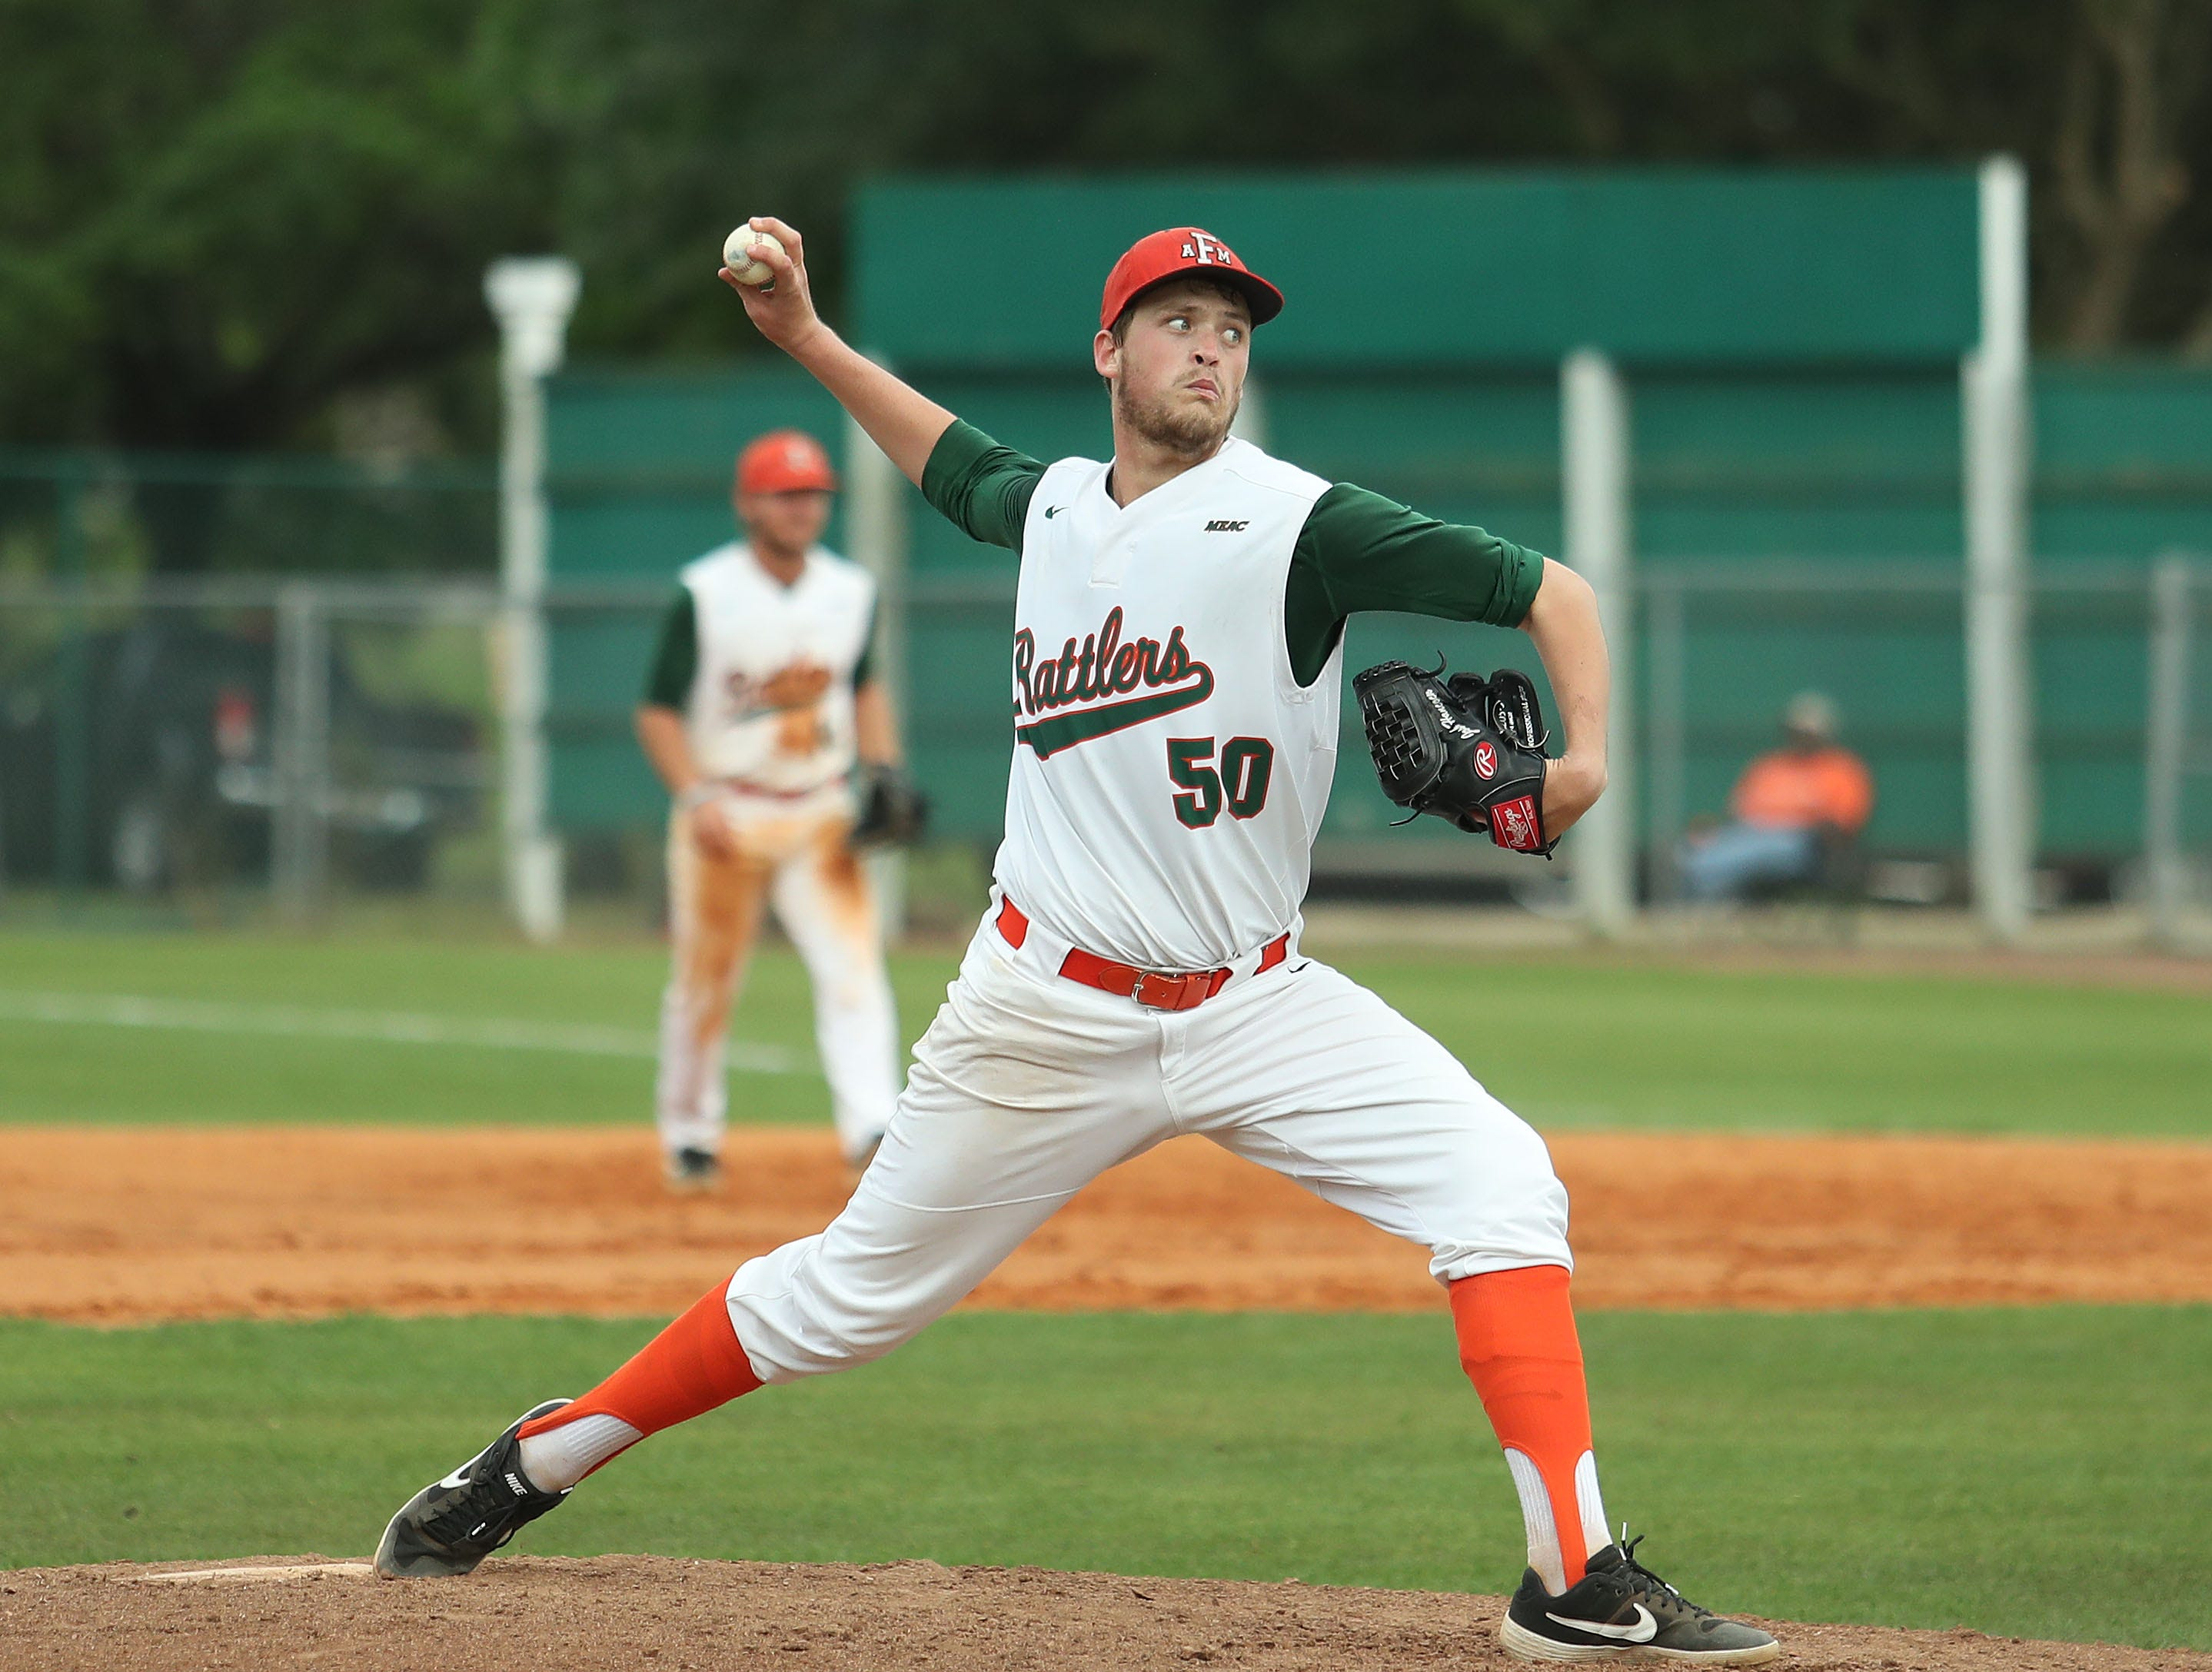 FAMU pitcher Josh Hancock delivers from the mound versus B-CU on Saturday, April 14, 2019.